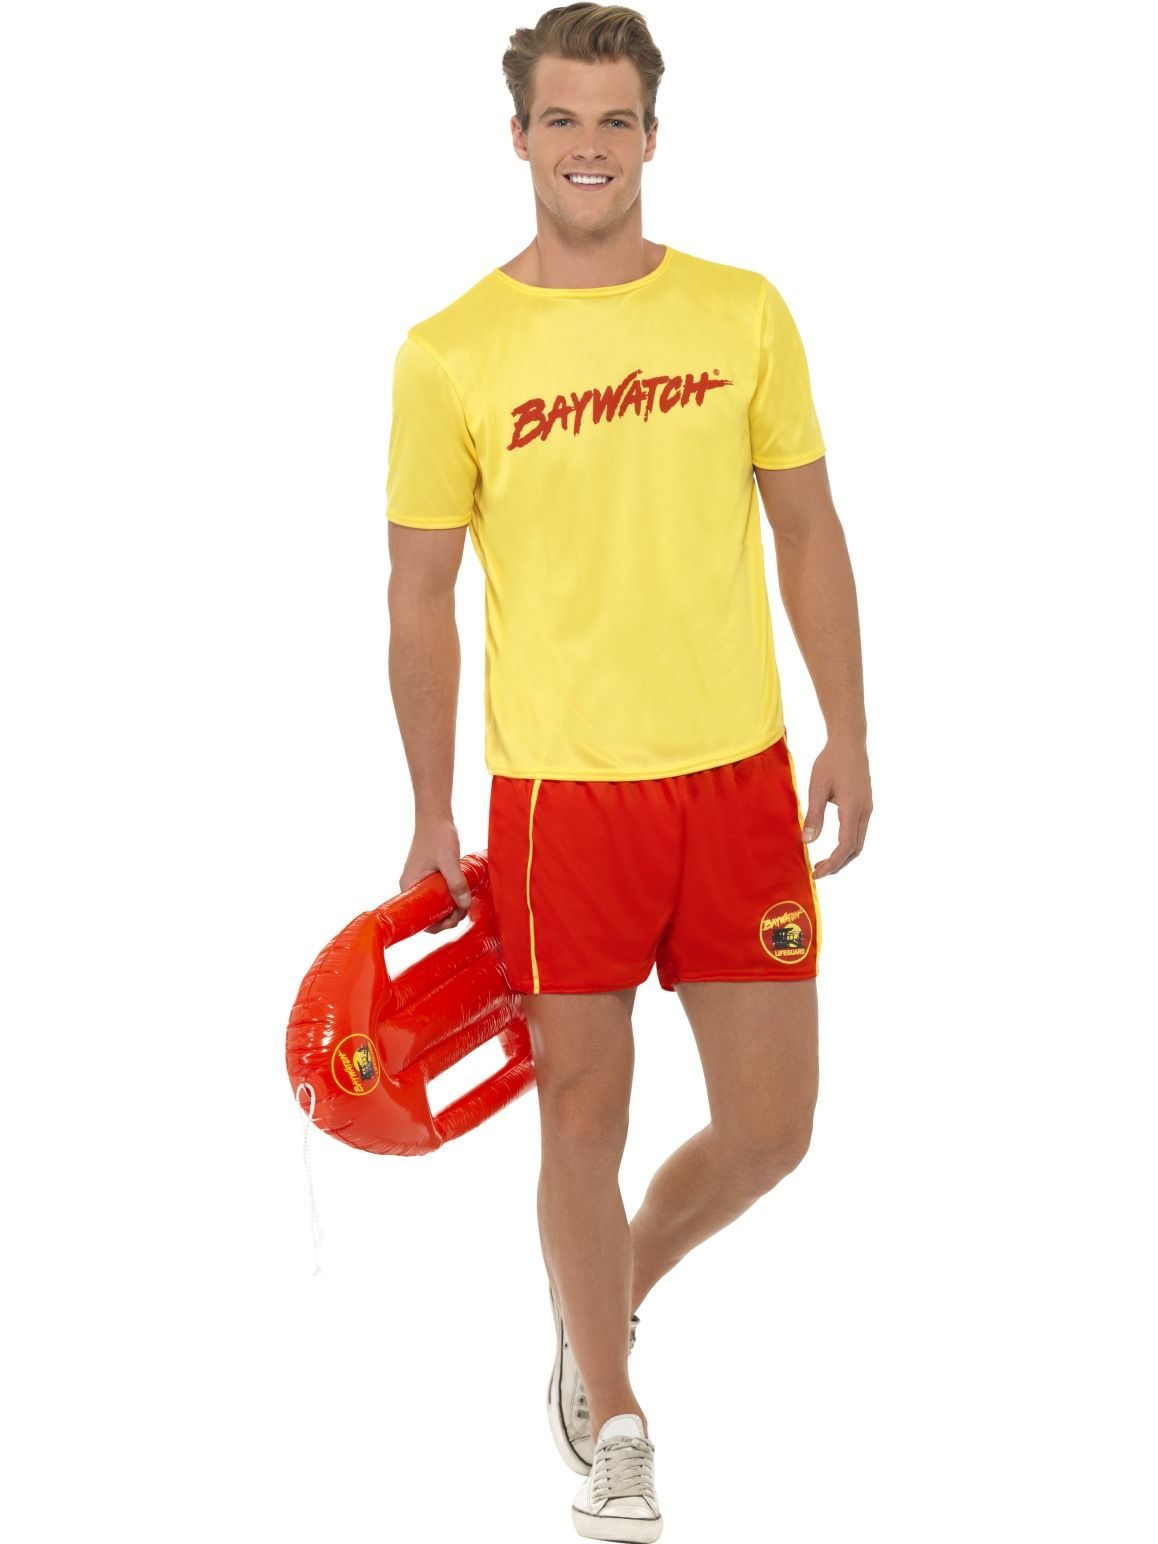 Baywatch Beach Life Guard Costume